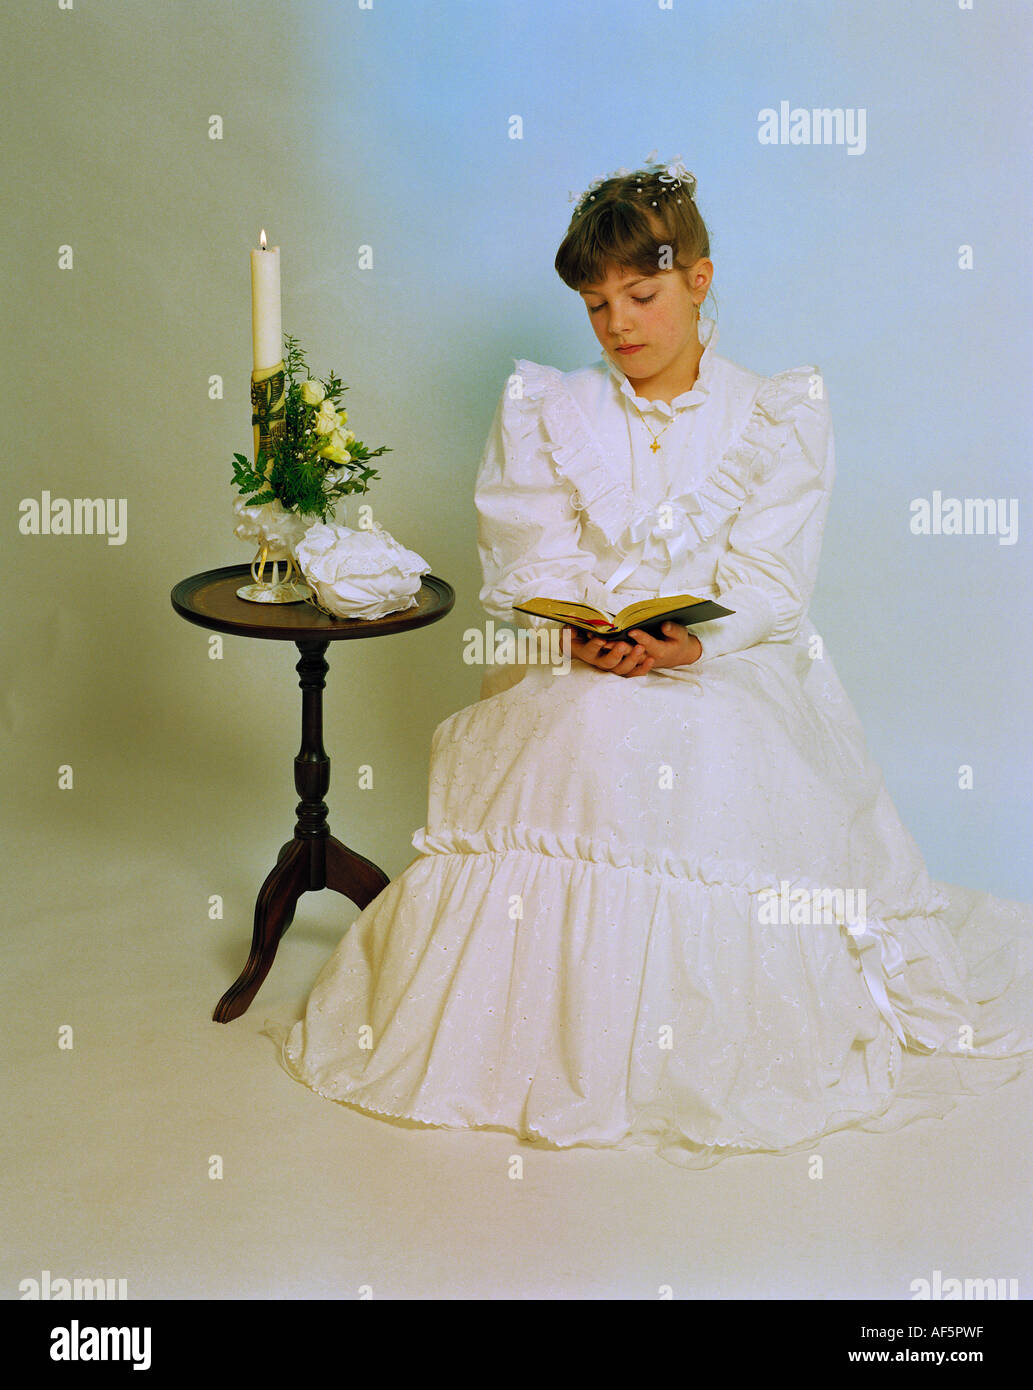 Roman Catholic Church, Holy Communion, girl holding a prayer book and a burning candle - Stock Image